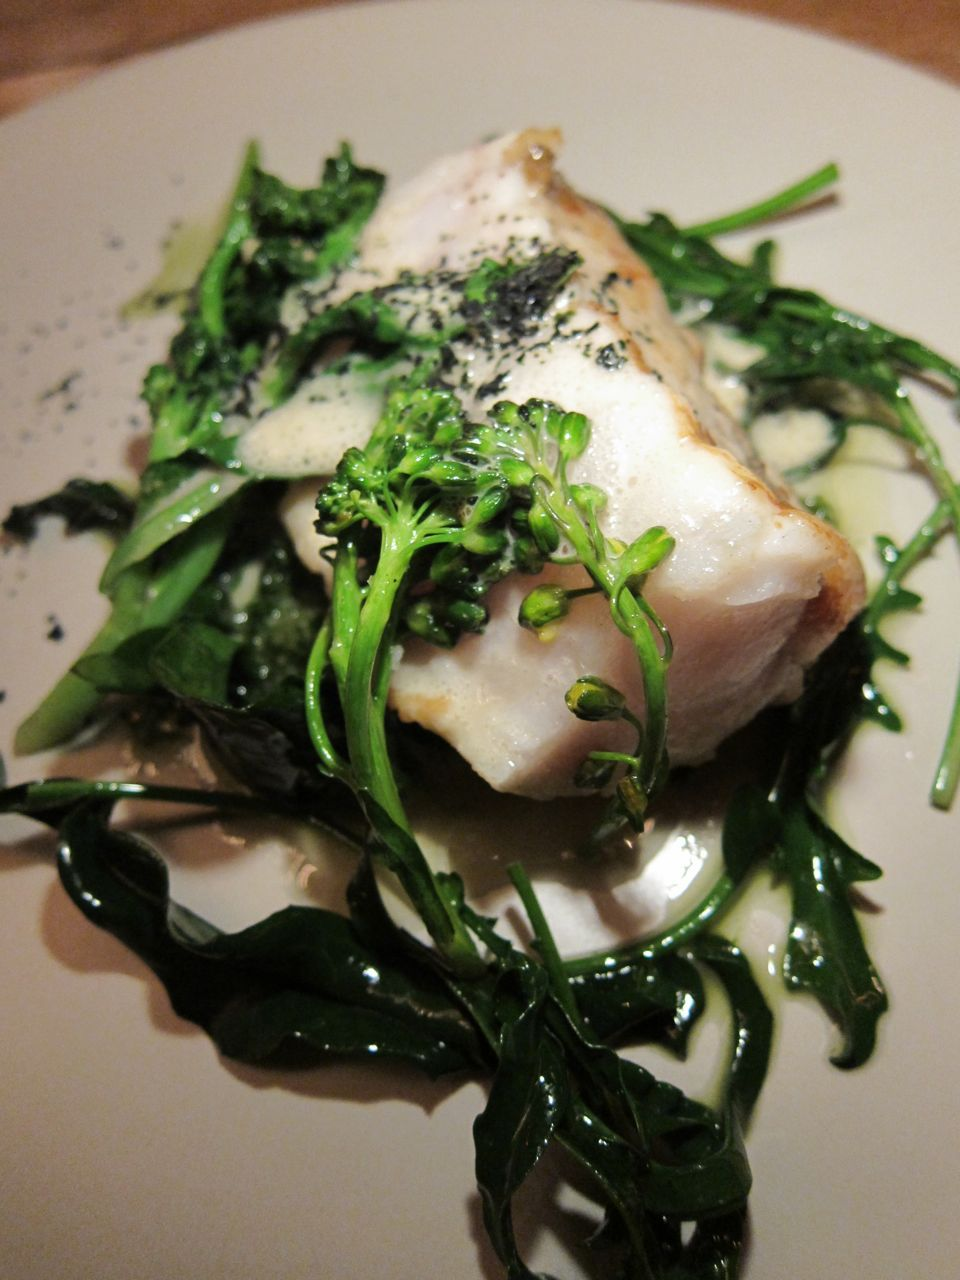 The salting of the monkfish is so perfect I imagine the fish was born already salted.